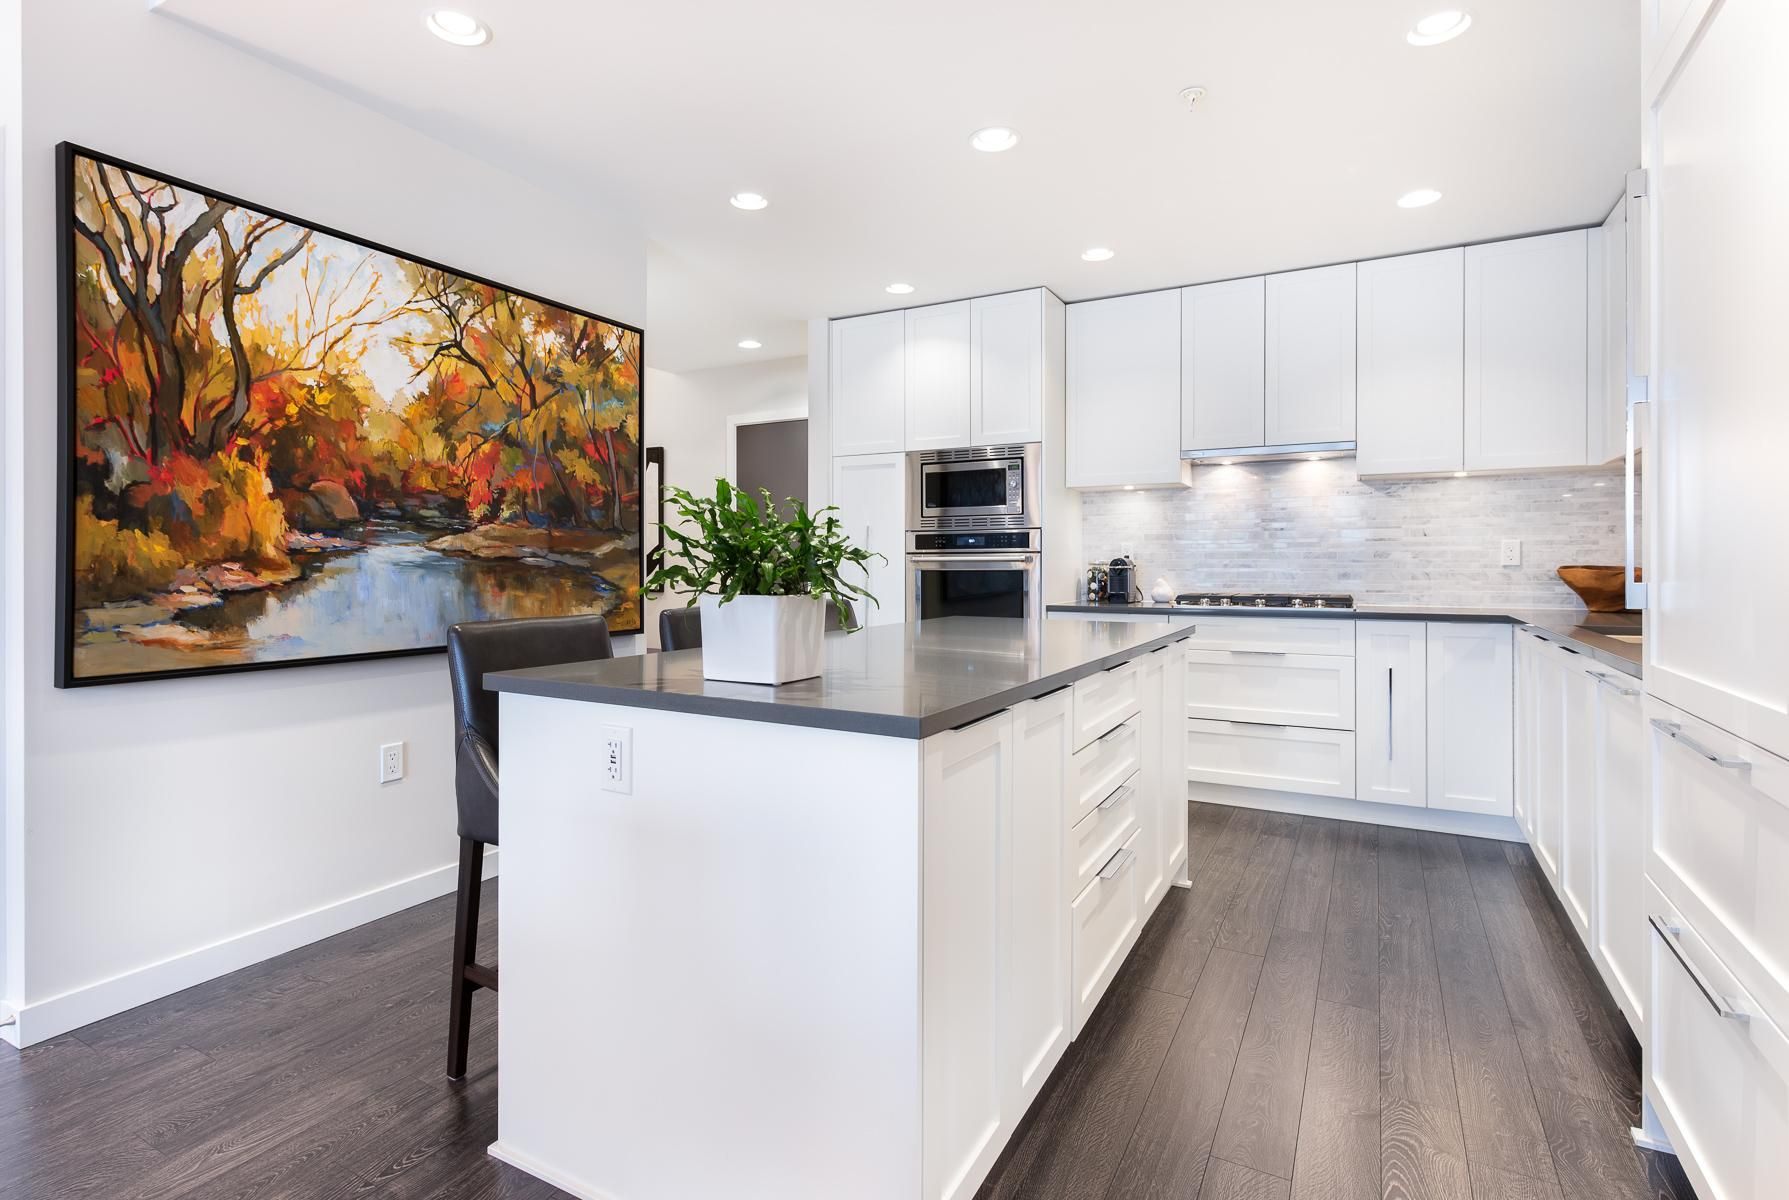 Main Photo: 405 3873 Cates Landing Way in North Vancouver: Deep Cove Condo for sale : MLS®# R2335541